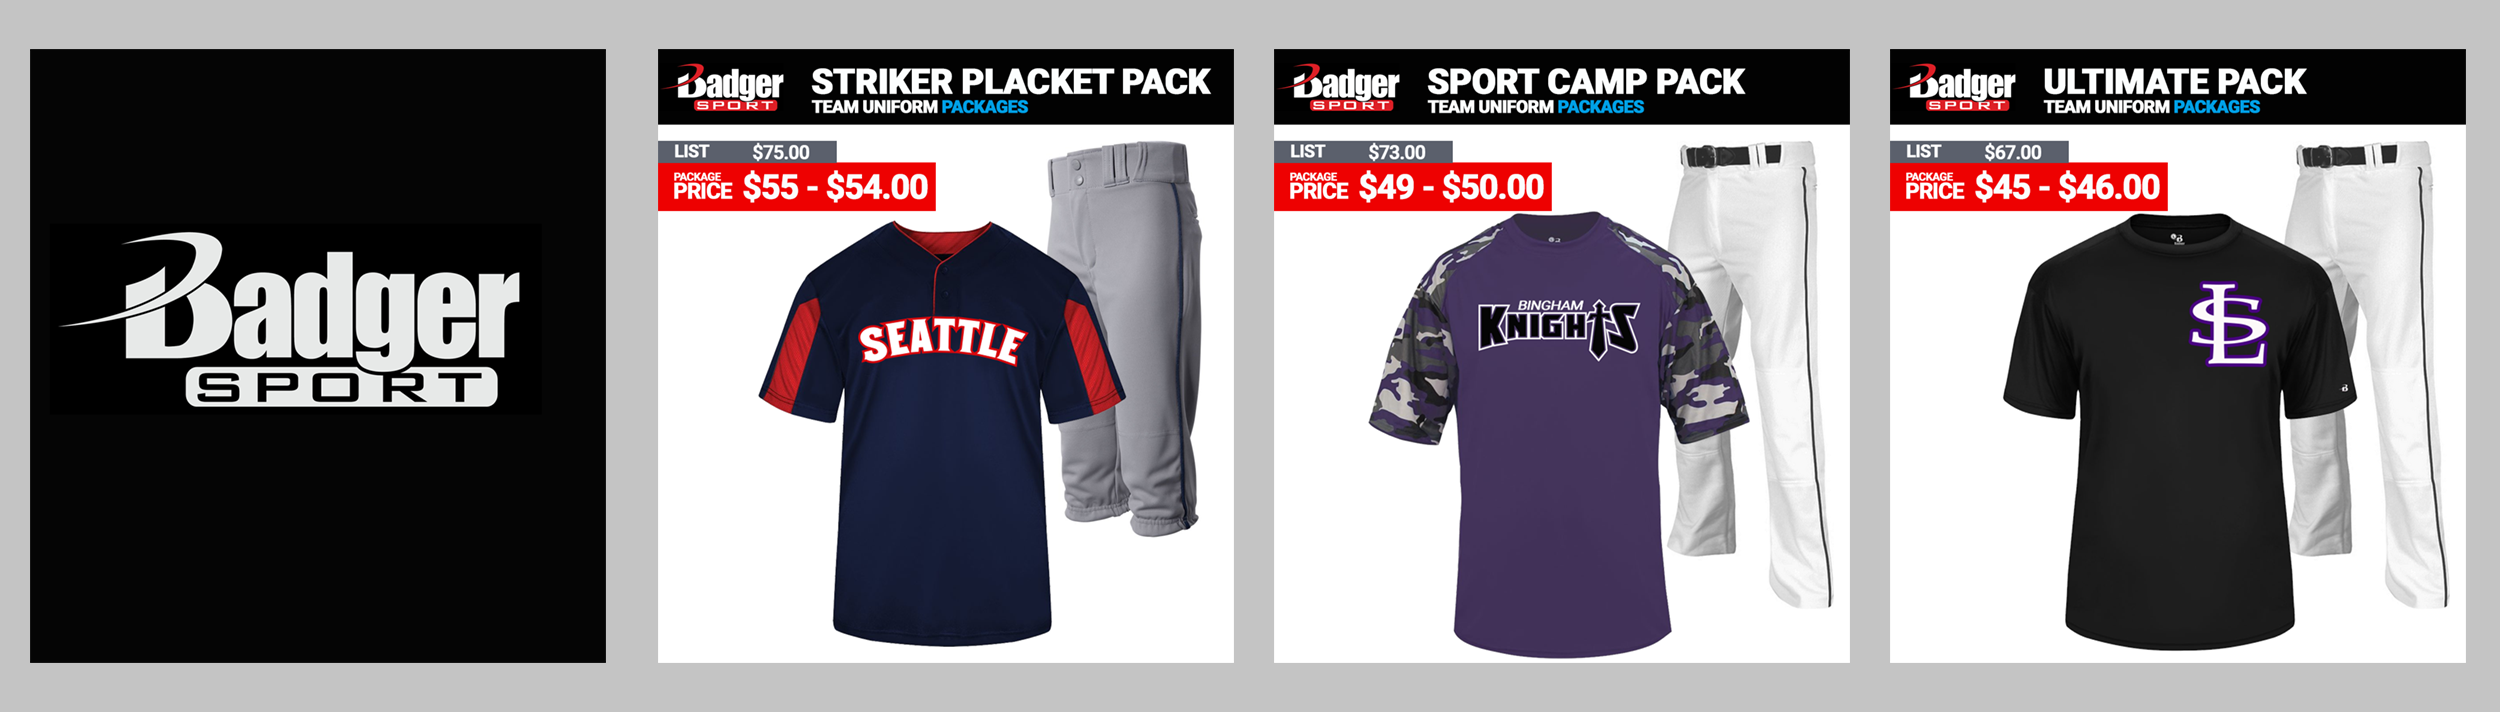 Badger Sport Baseball Uniform Packages